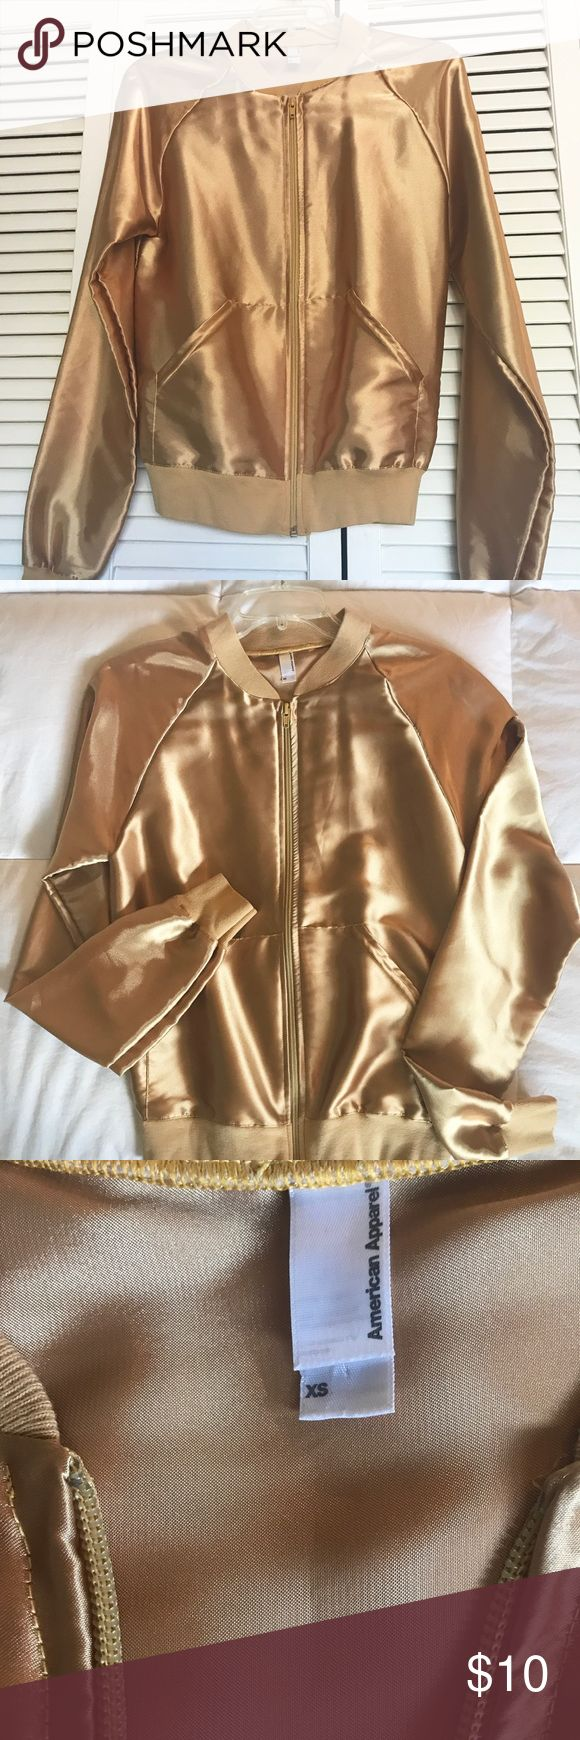 American Apparel Gold Jacket Satin-like gold jacket, size XS.  Great condition, worn once to a disco party and it was a hit! American Apparel Jackets & Coats